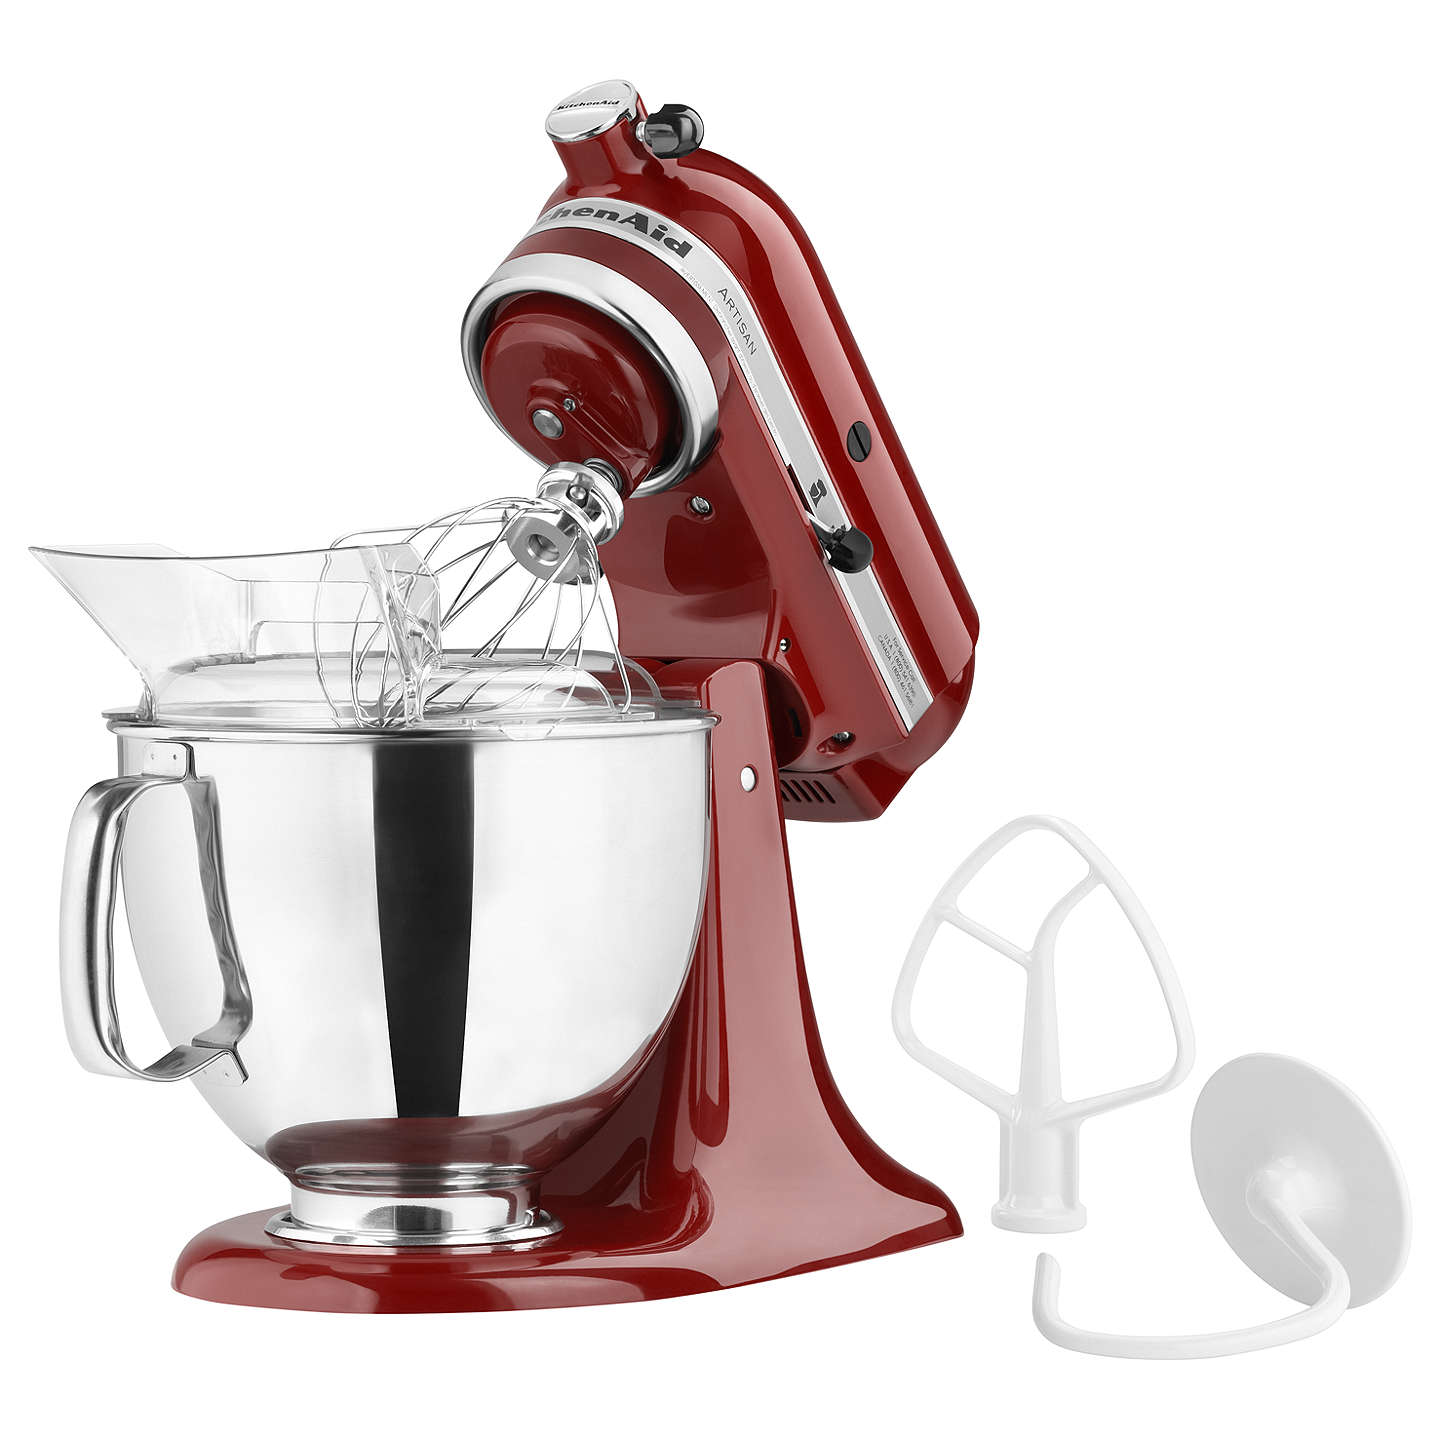 Buykitchenaid 150 Artisan 48L Stand Mixer, Cinnamon Red Online At